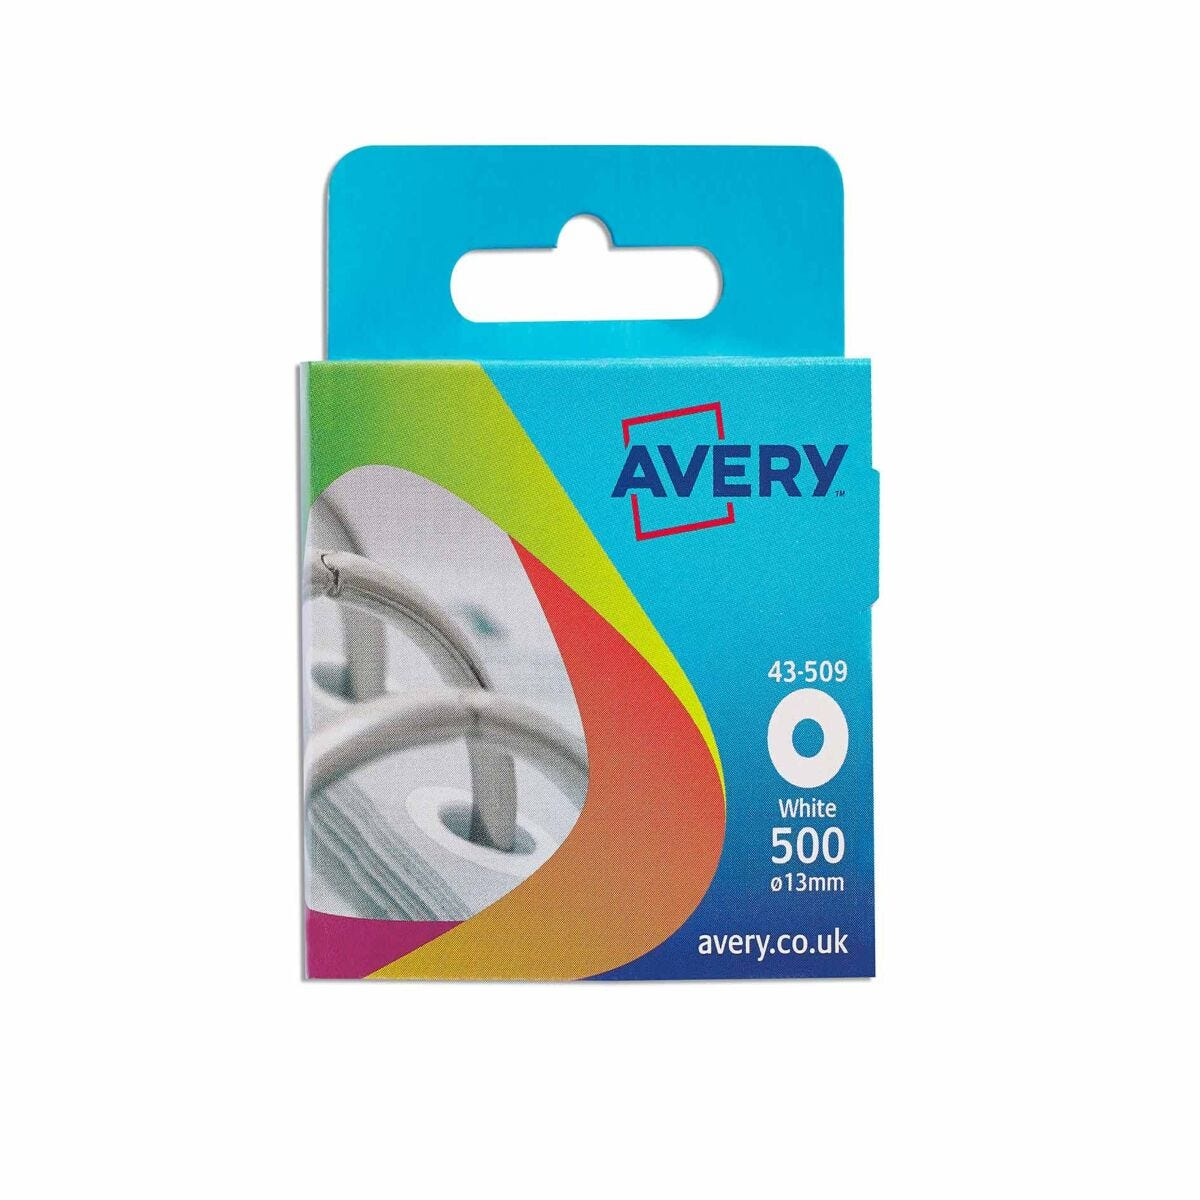 Avery Reinforcement Rings 13mm 43-509 500 Per Pack